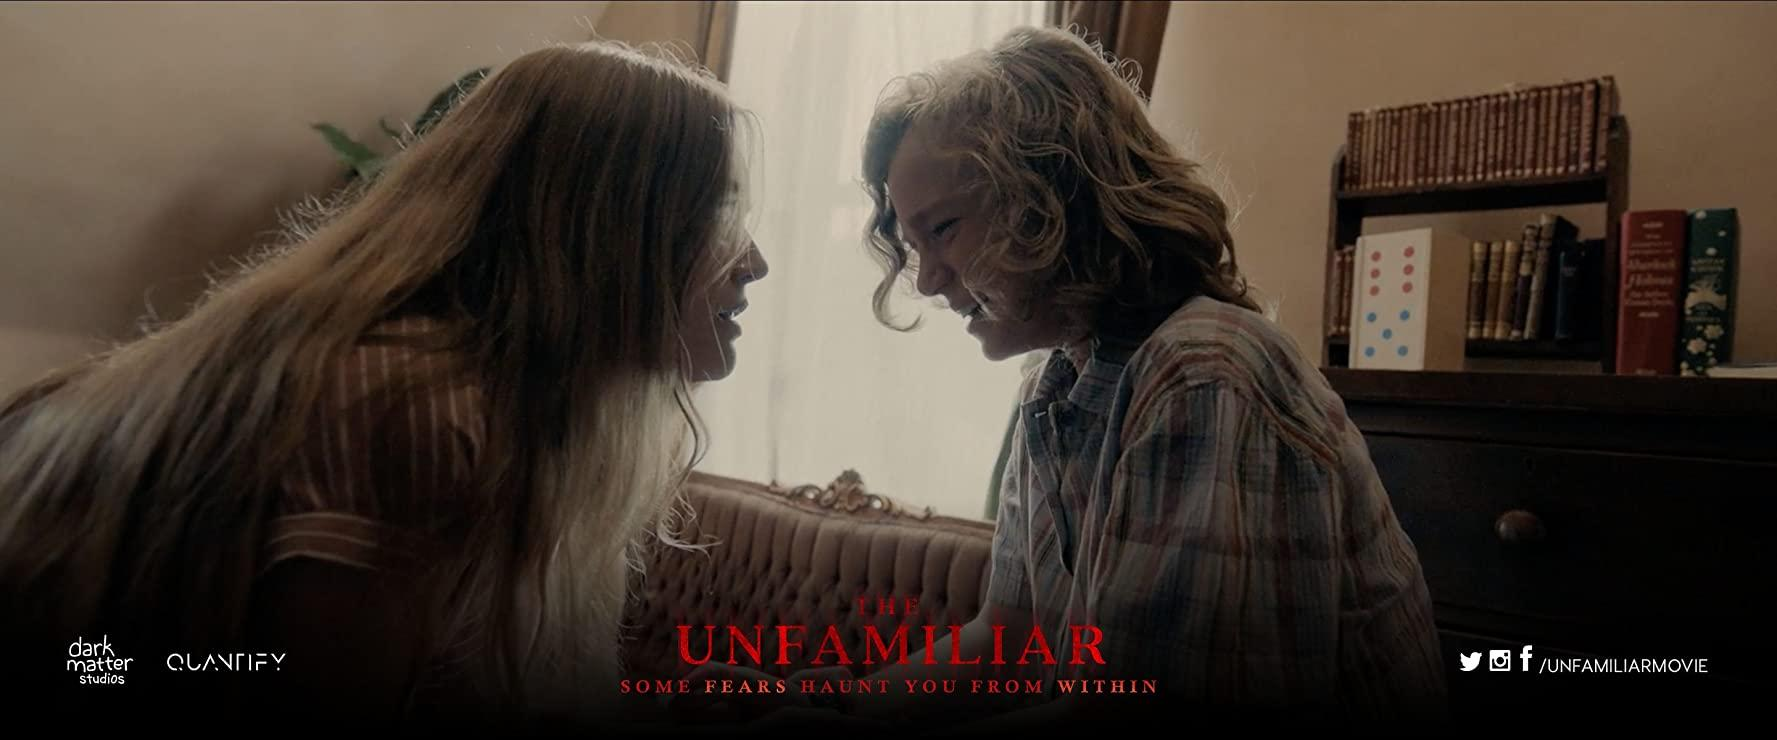 مشاهدة فيلم The Unfimiliar (2020) مترجم HD اون لاين